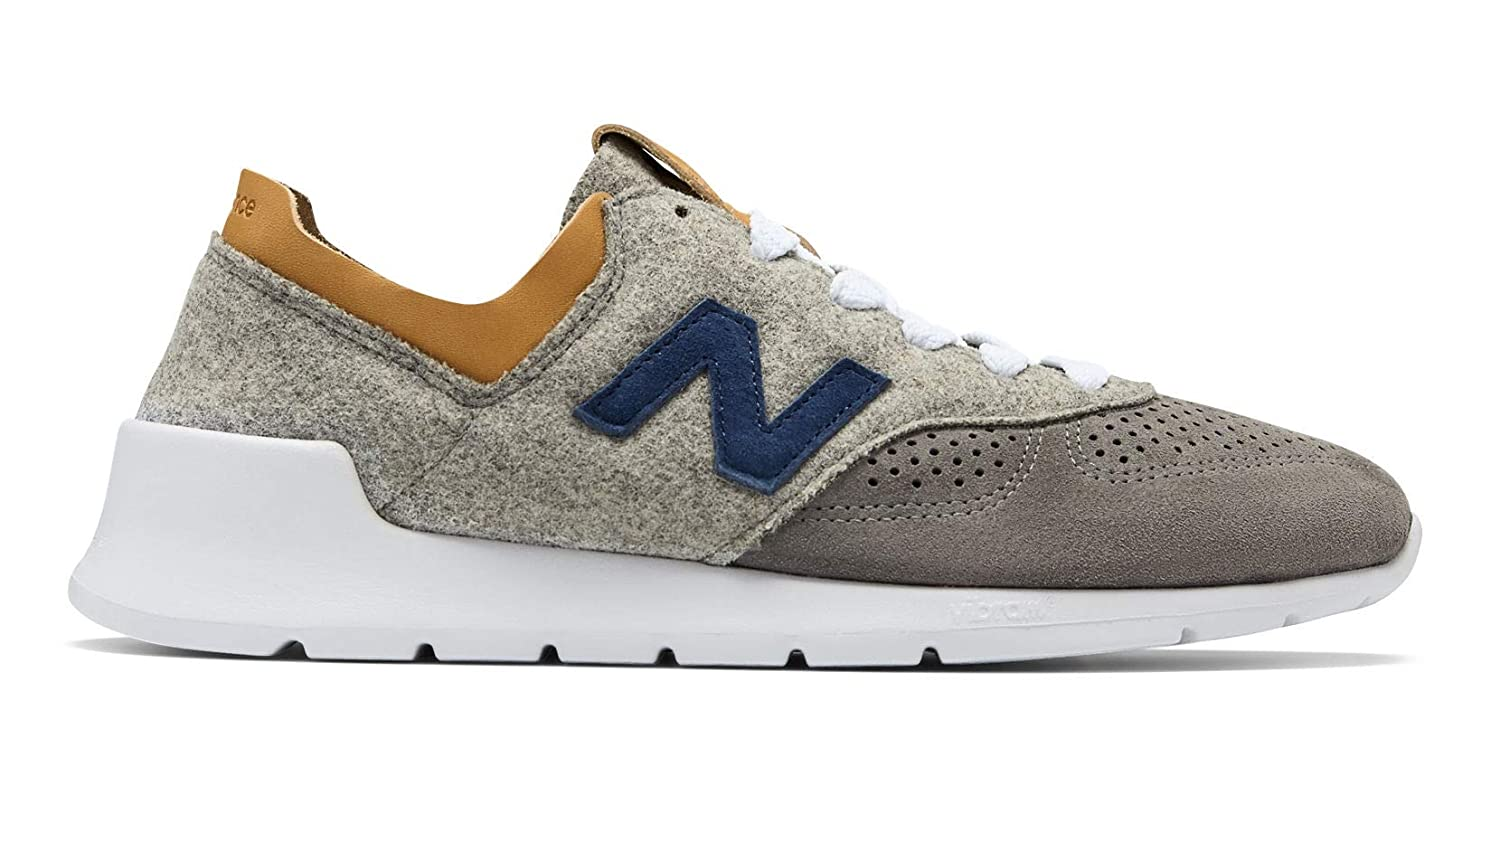 New Balance 1978 Made in US Shoe Men's Casual